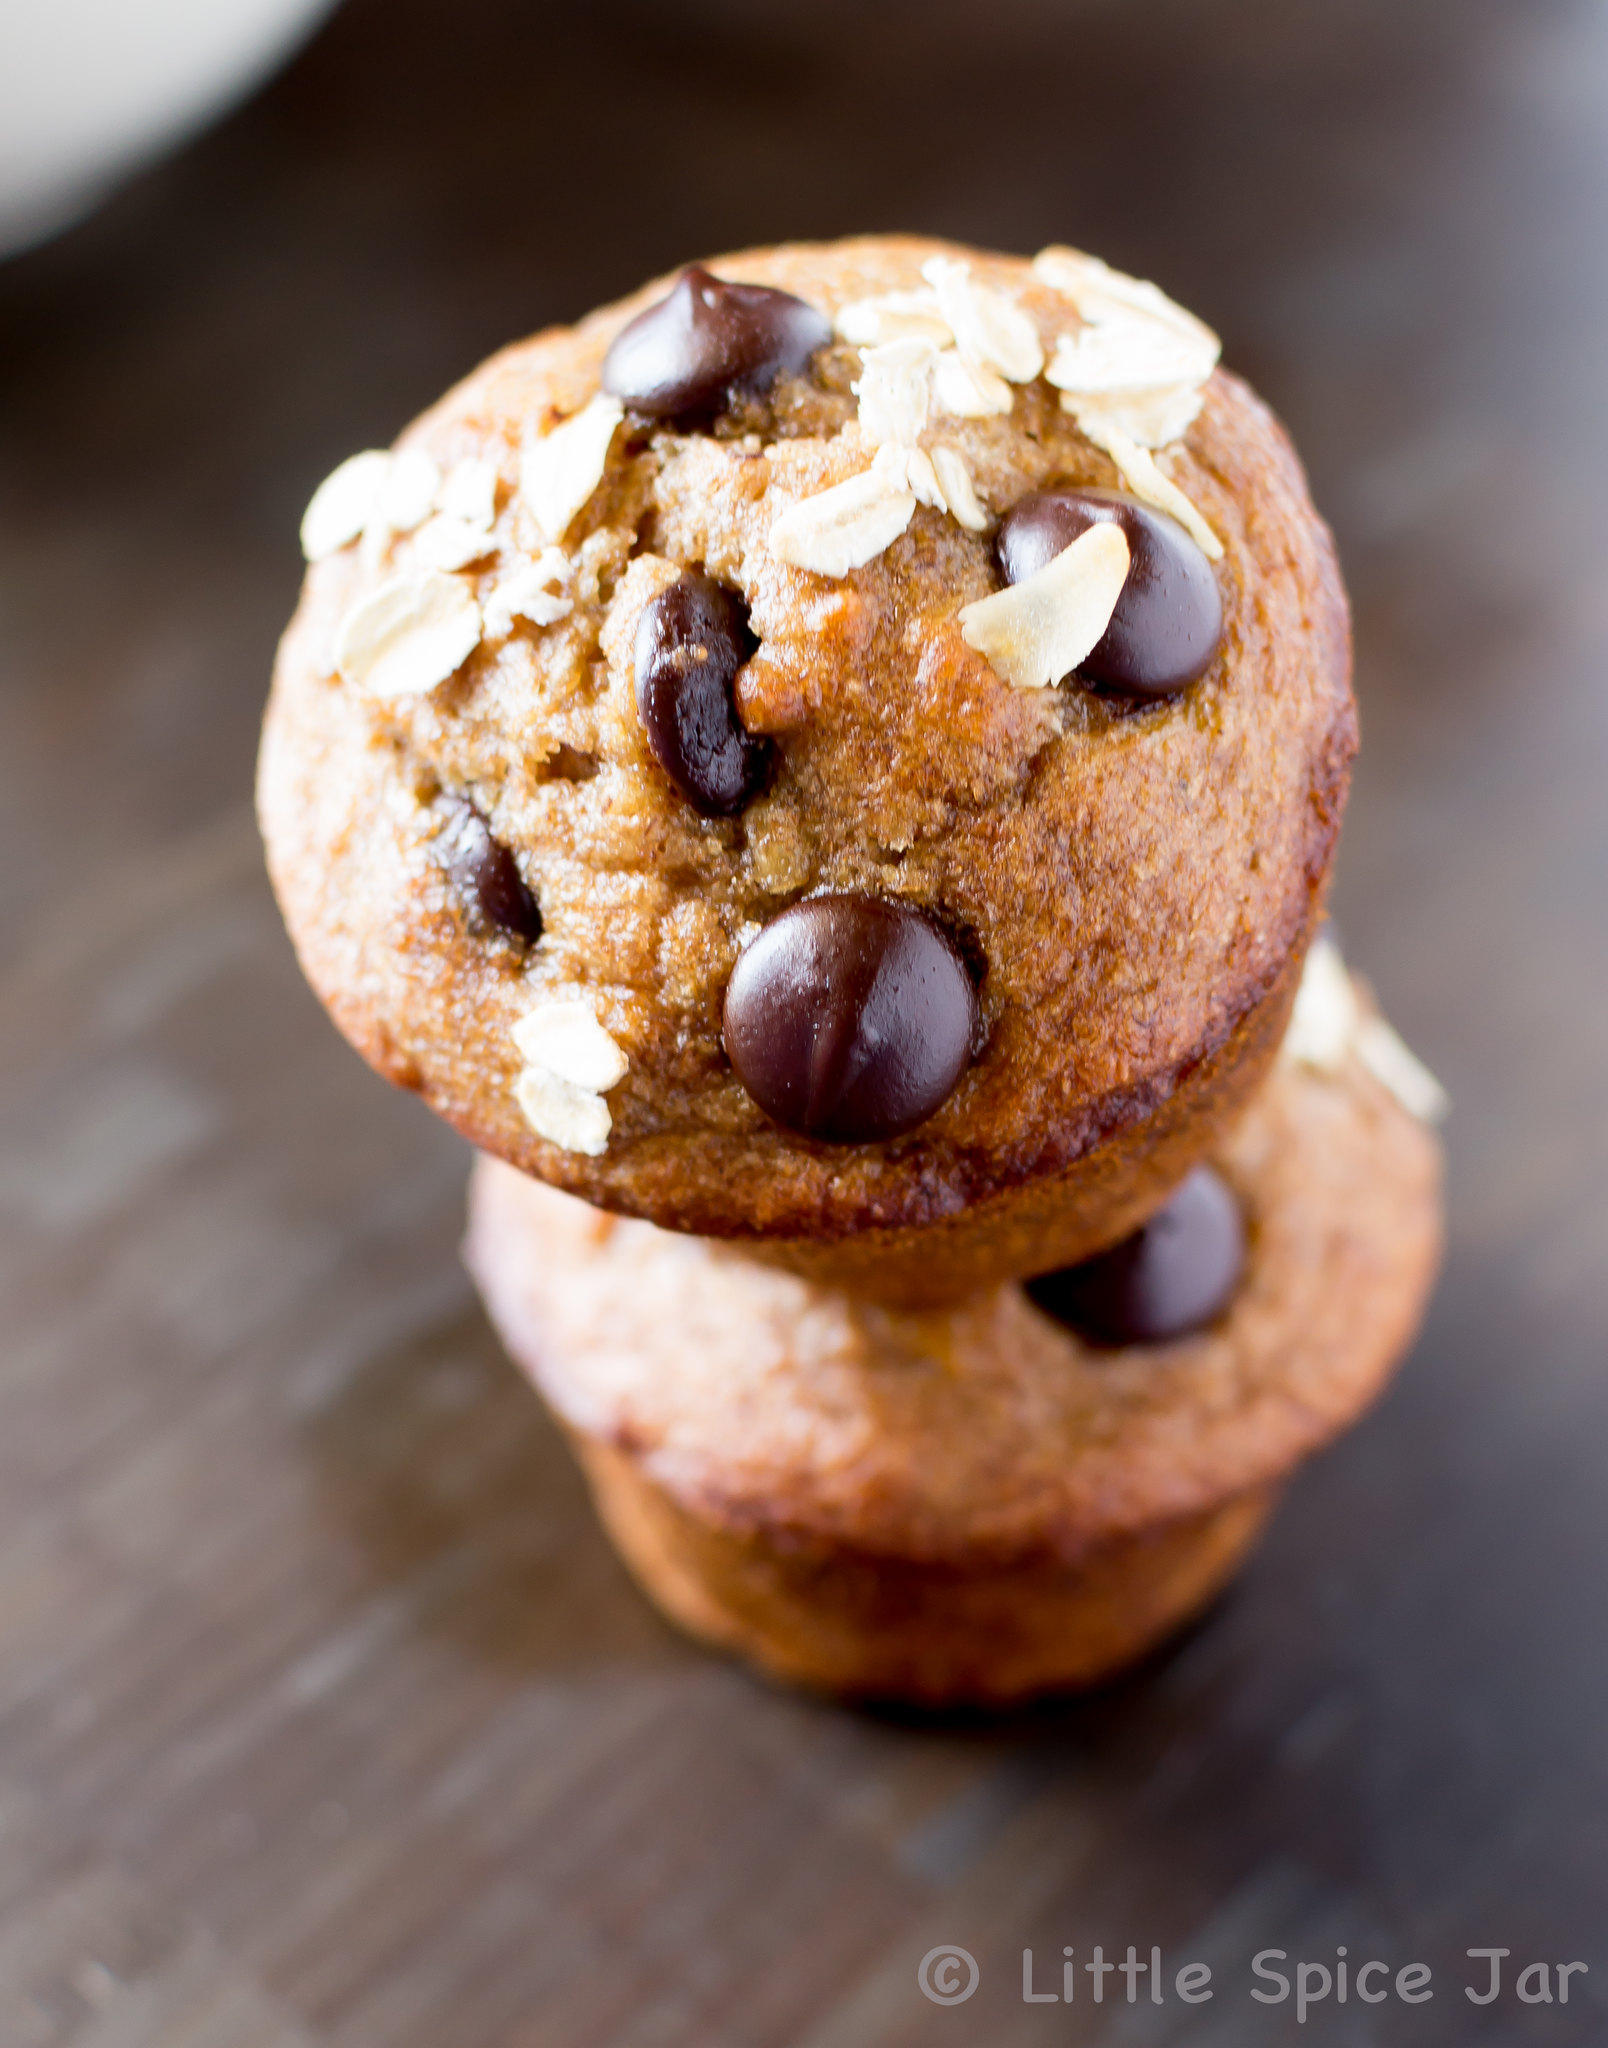 stack of two chocolate chip banana muffins showing oats and chips